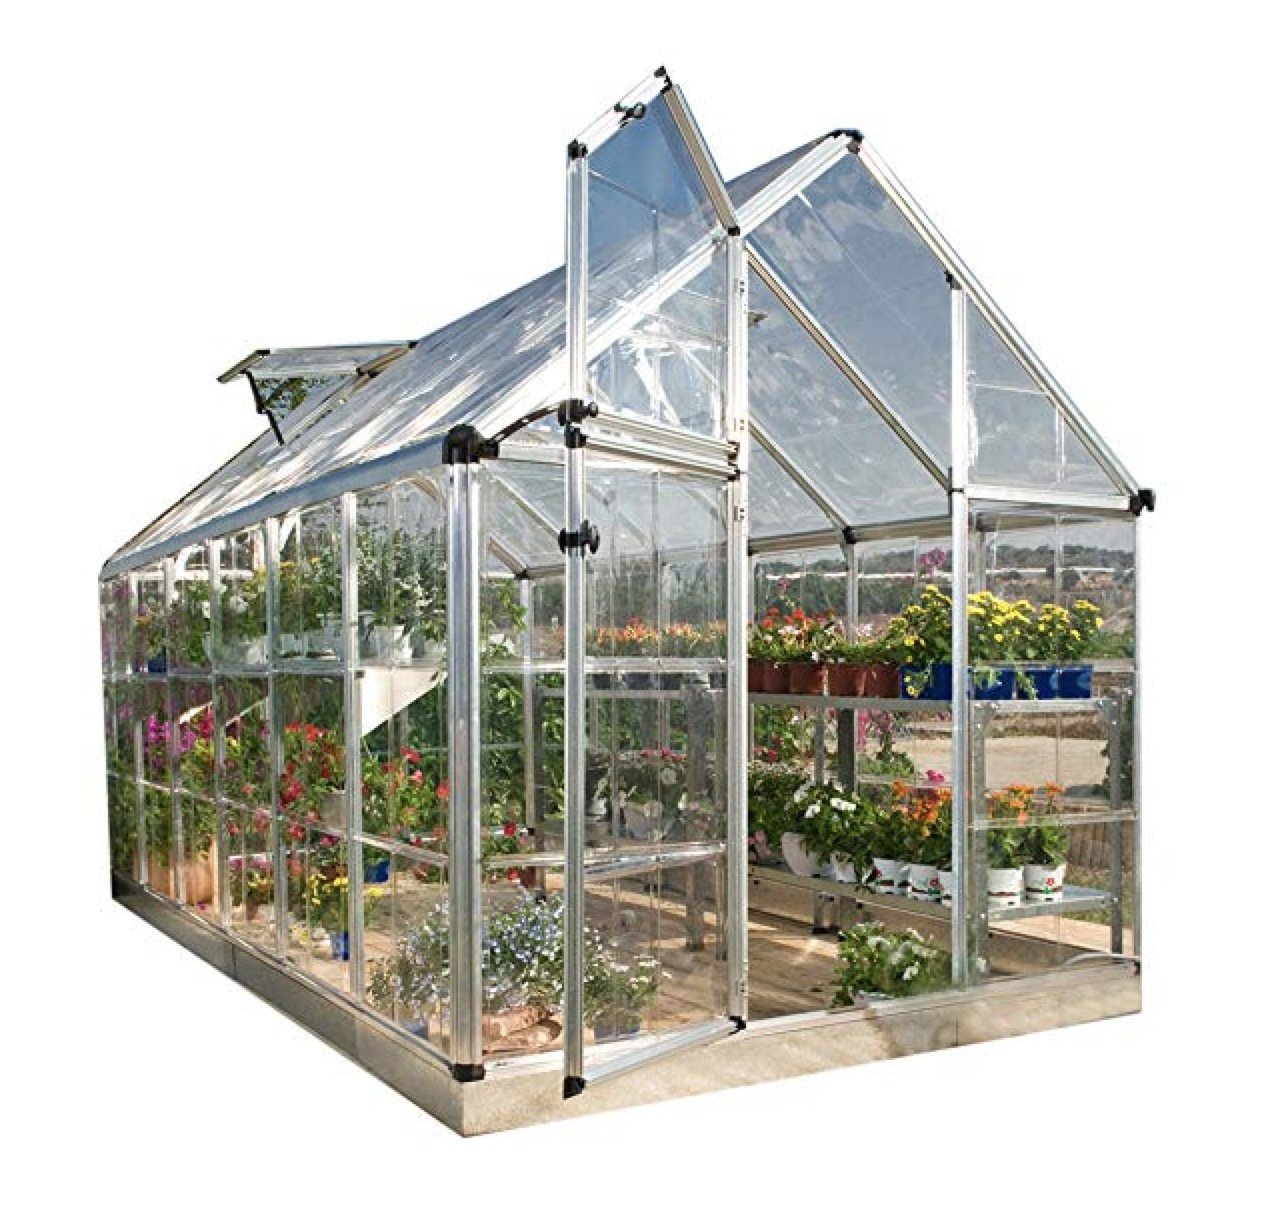 Palram Snap & Grow 6' Series Hobby Greenhouse